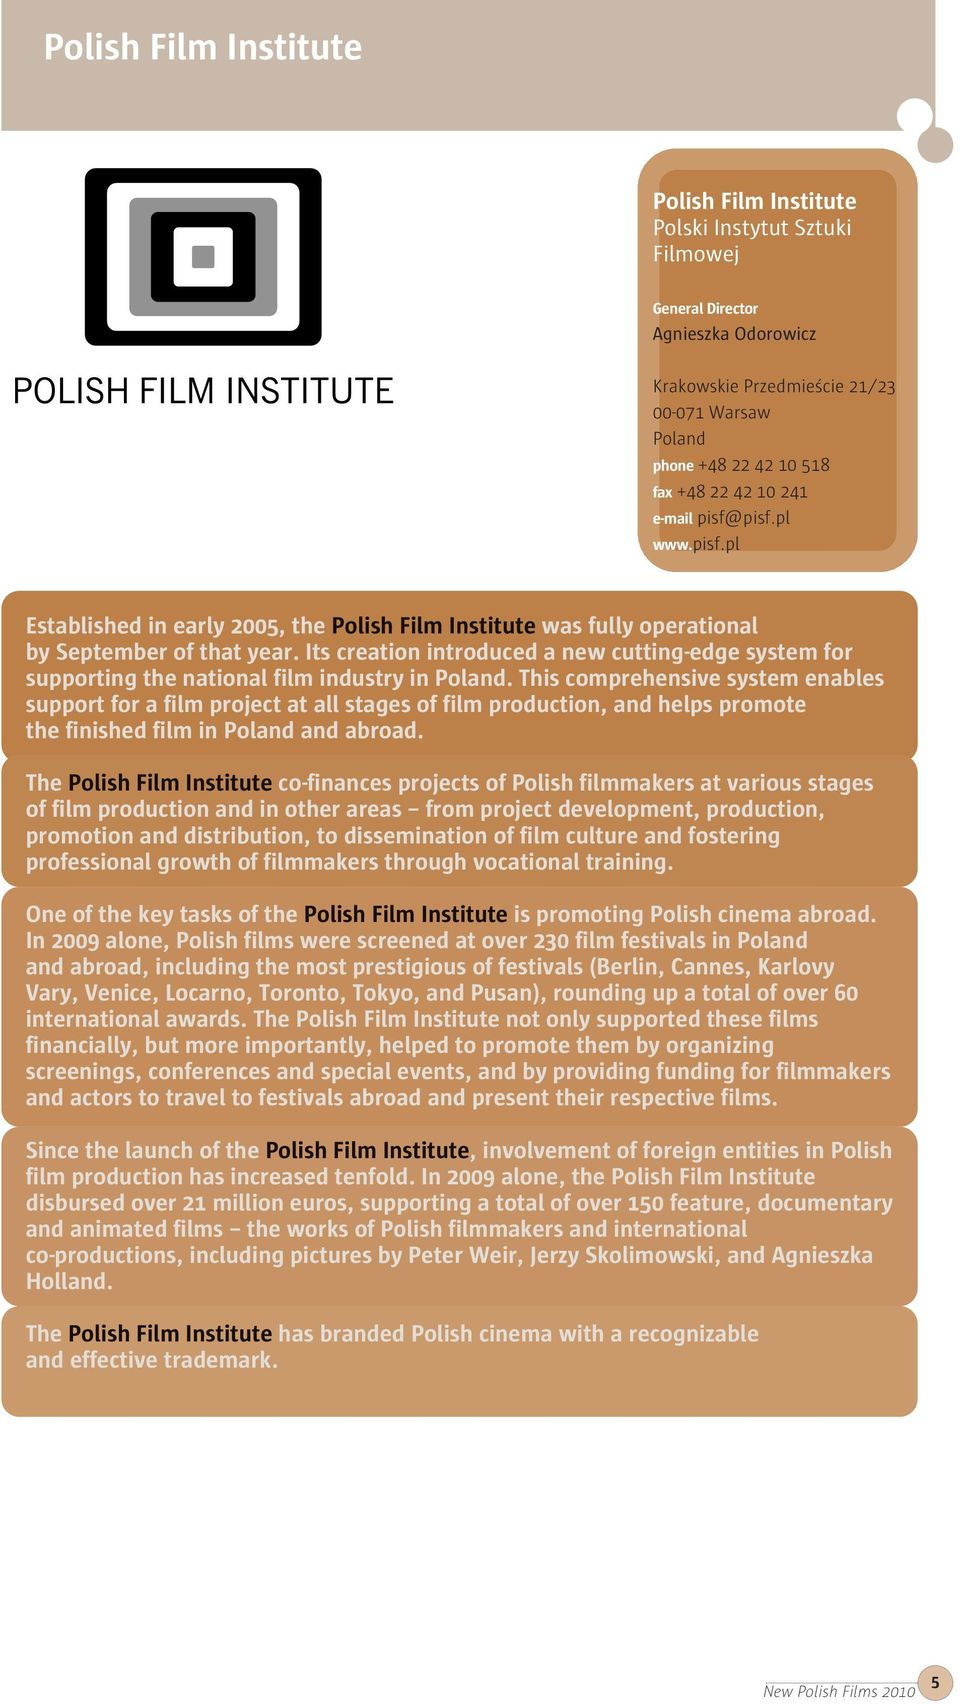 Its creation introduced a new cutting-edge system for supporting the national film industry in Poland.